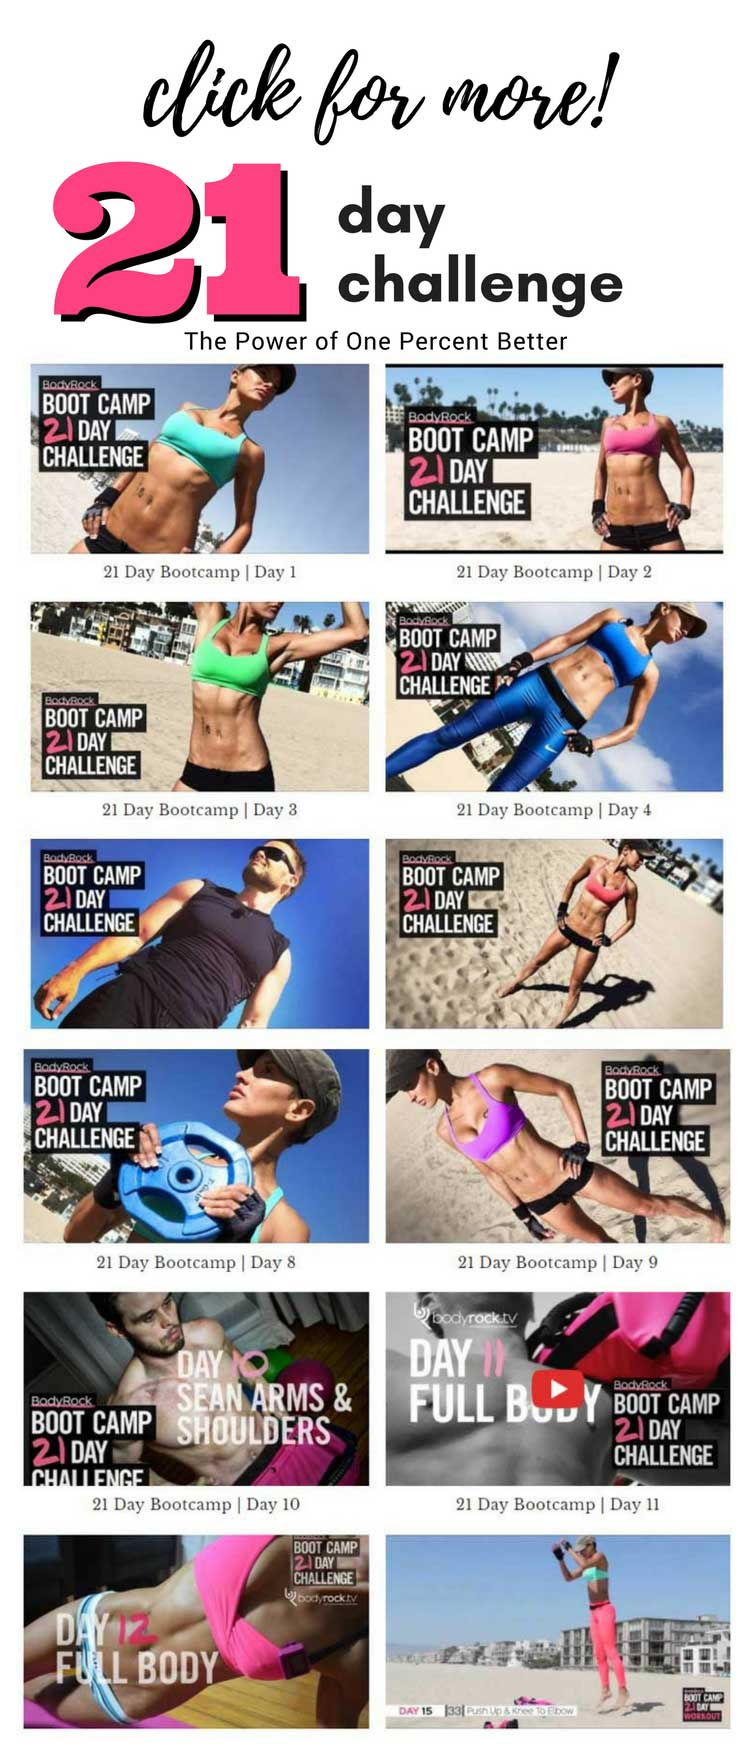 BodyRock Book Camp 21 Day Challenge